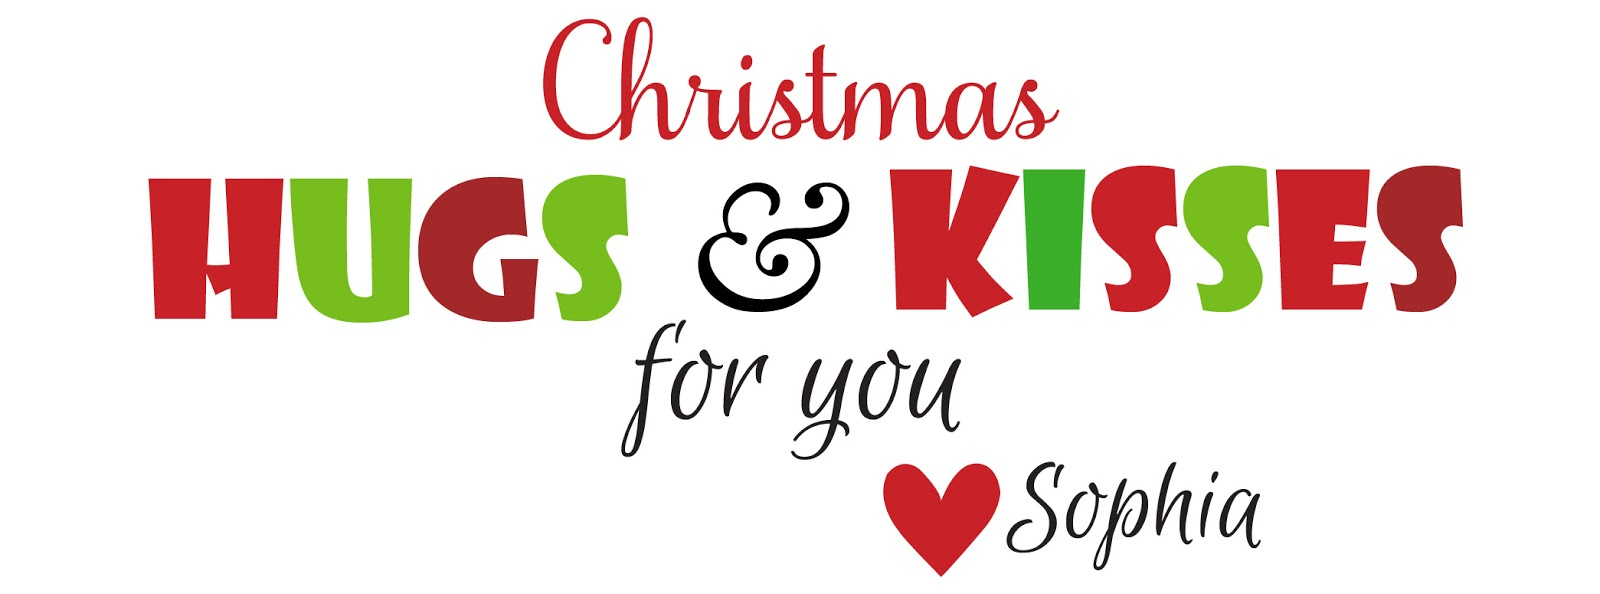 It's Written on the Wall: Christmas Hugs and Kisses - We ...